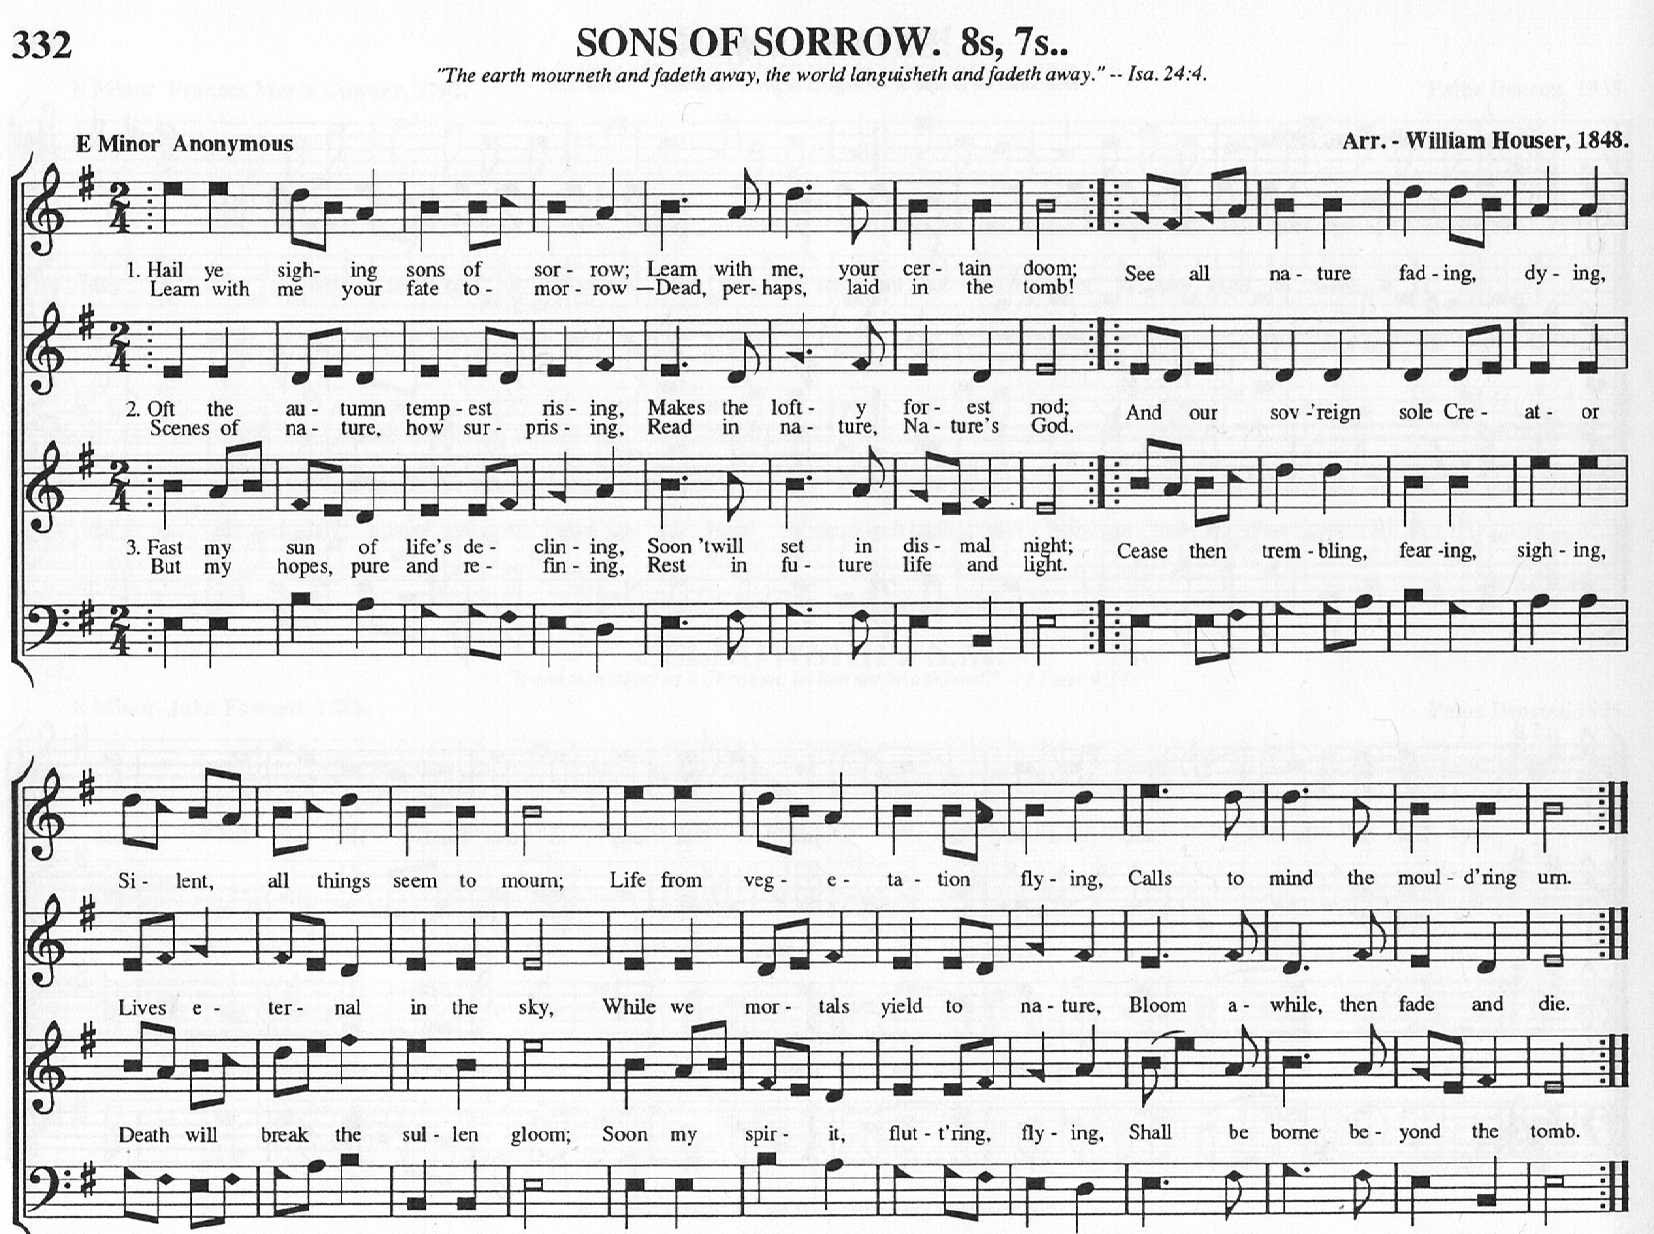 https://sites.google.com/a/sacredharpbremen.org/sacred-harp-bremen/ressourcen/332-sons-of-sorrow/332%20Sons%20of%20Sorrow.pdf